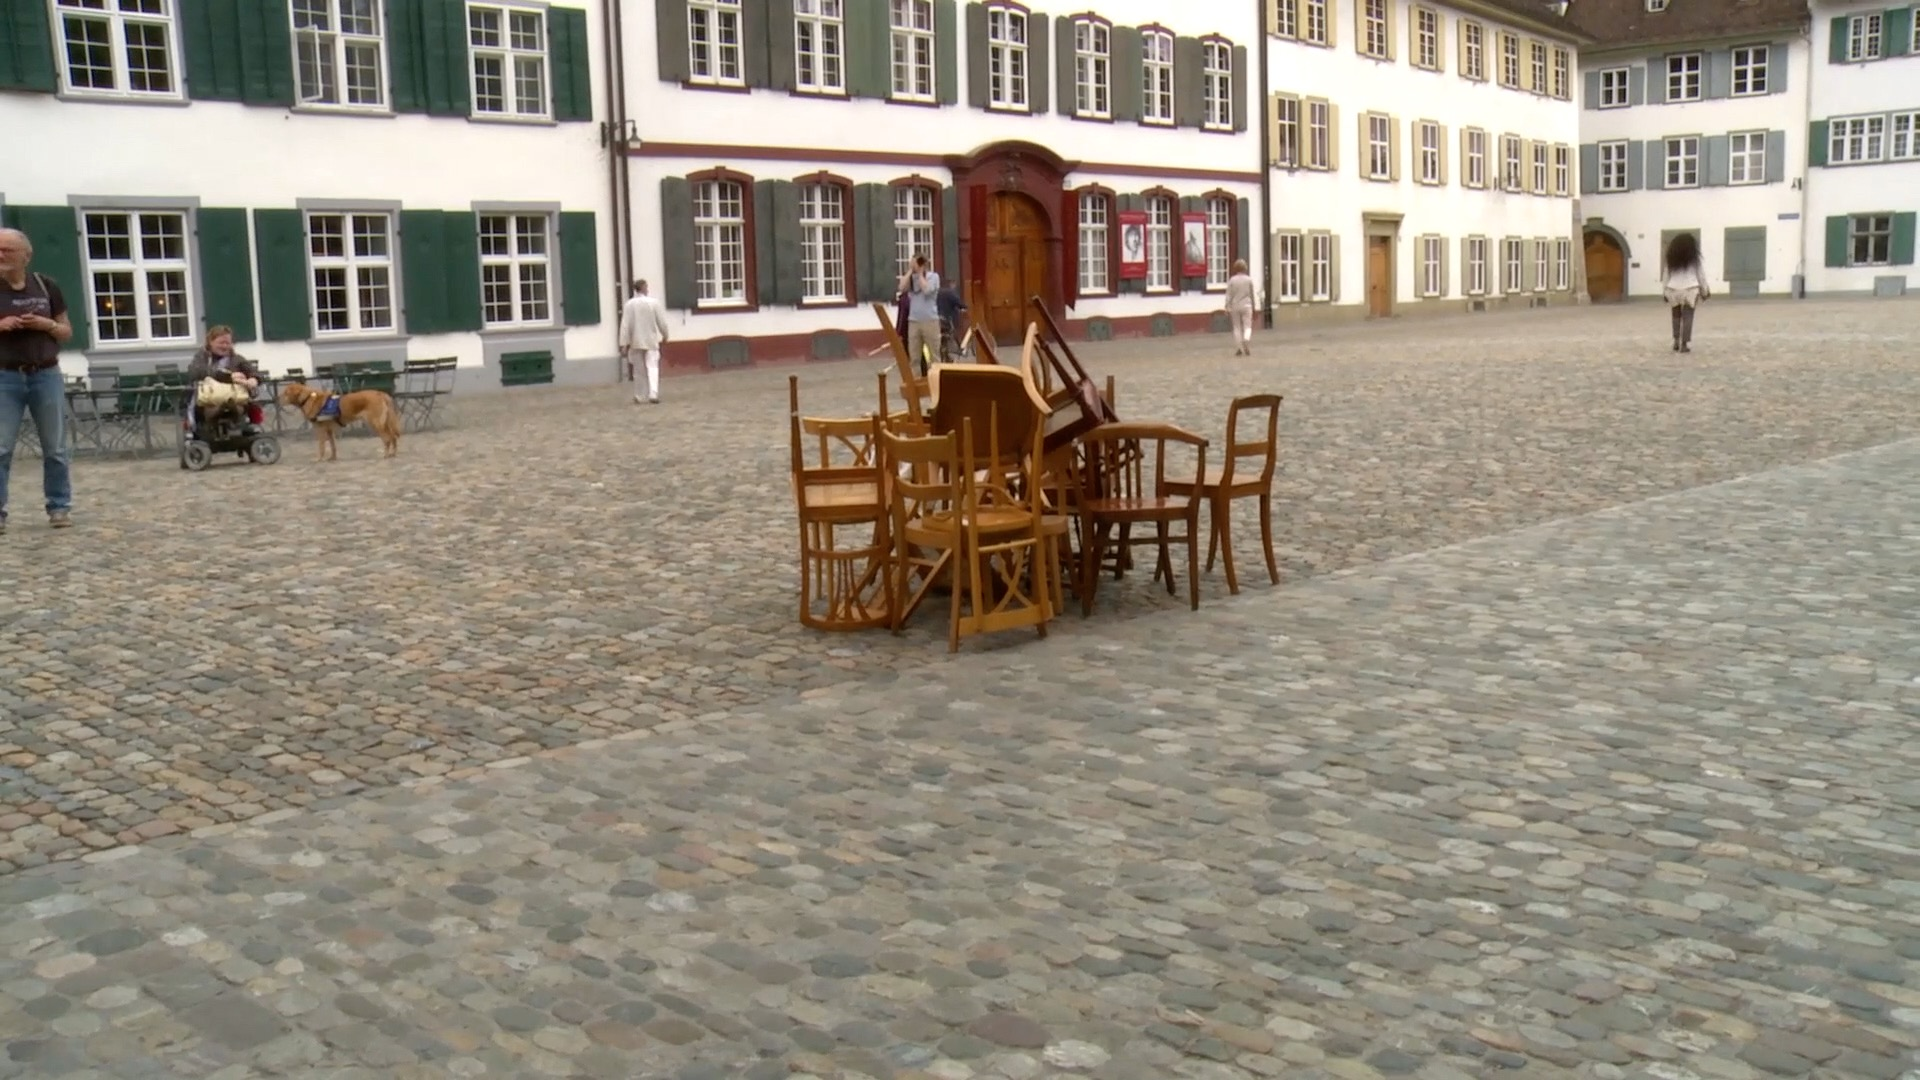 Final Construction of the chairs at the Münsterplatz